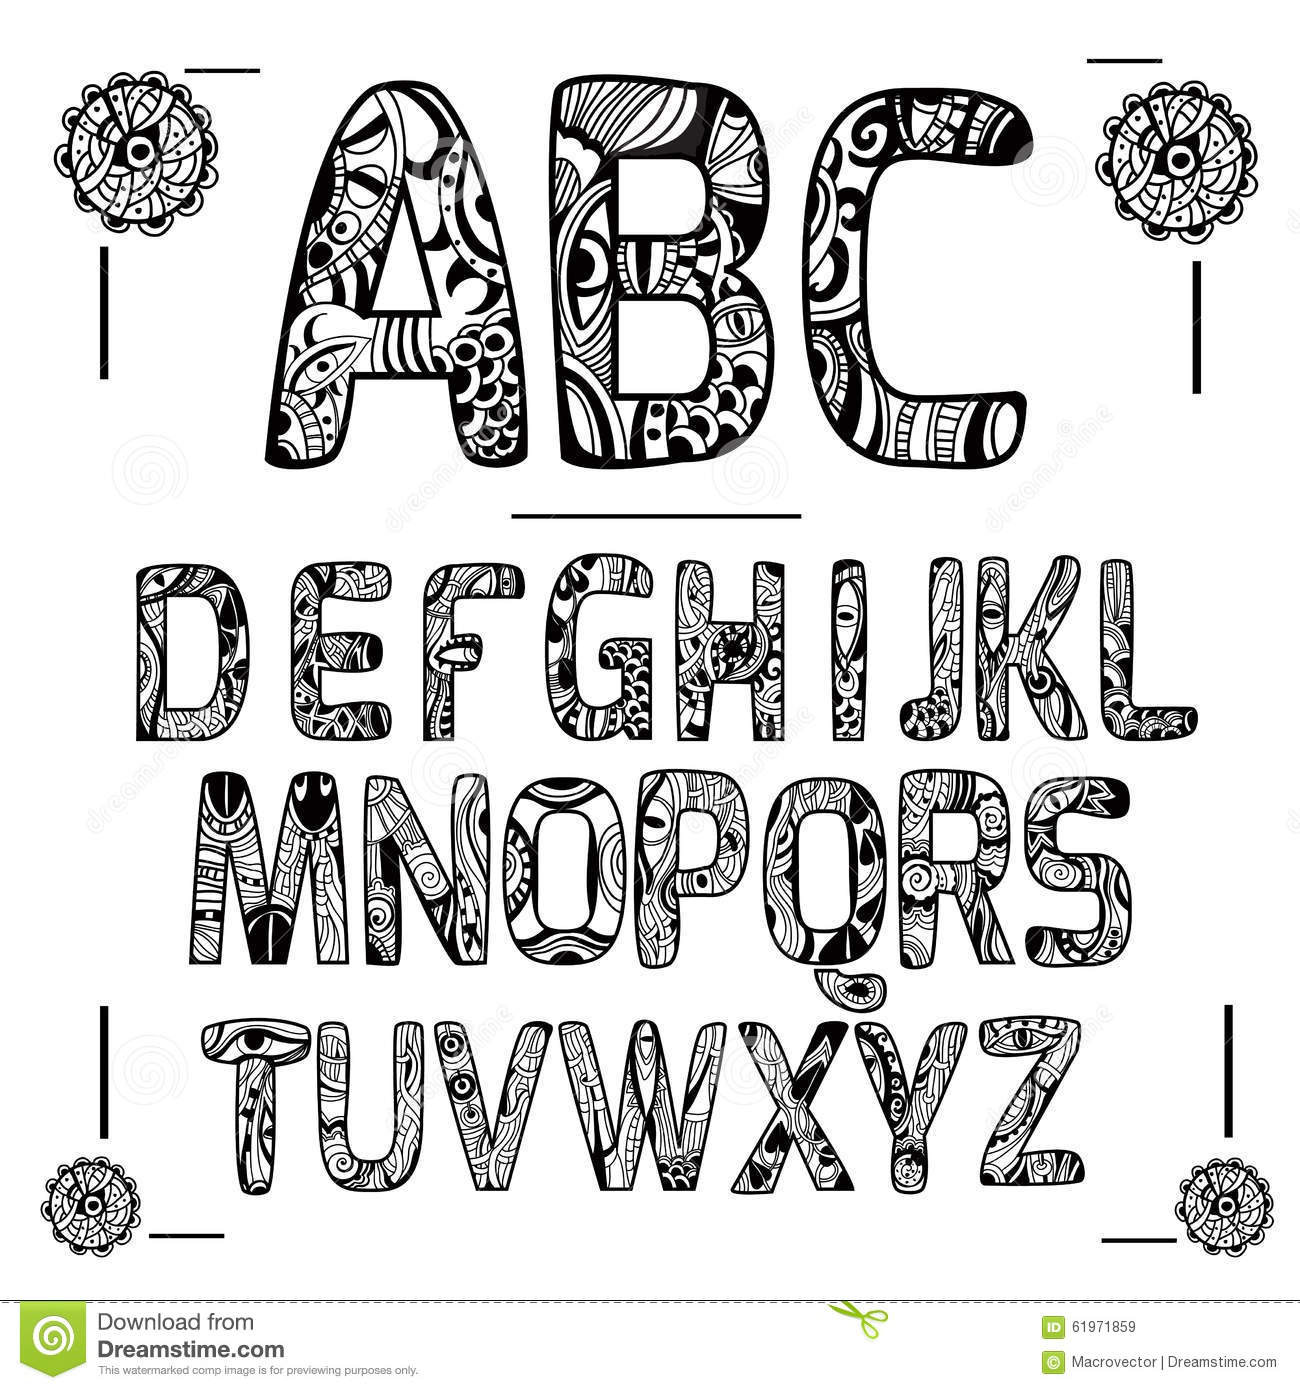 Stock Illustration Zentangle Alphabet Black Capital Letters Decorative Ornament Isolated Vector Illustration Image61971859 on artistic letter e